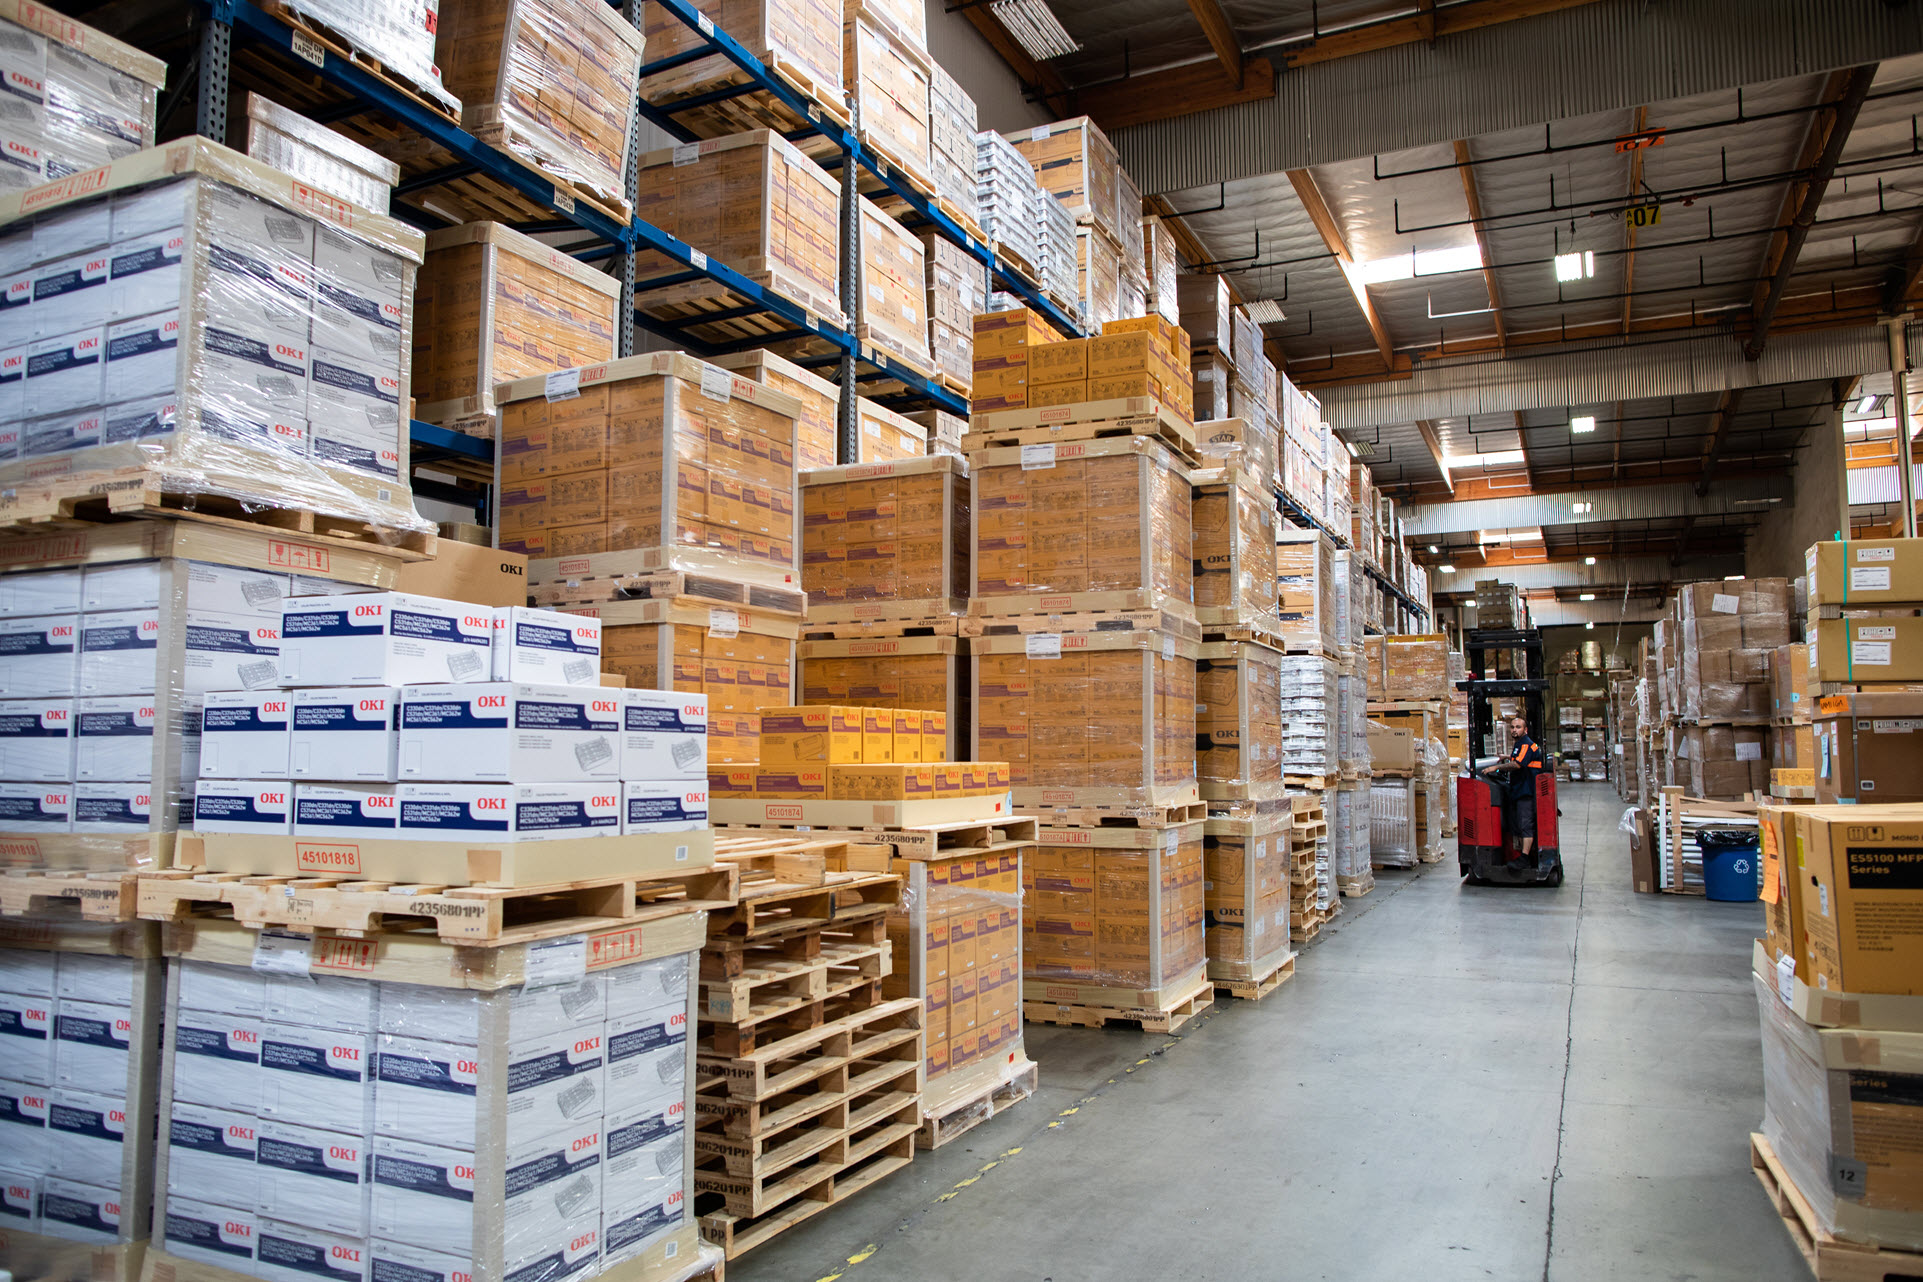 Warehouse-5-resize.jpg